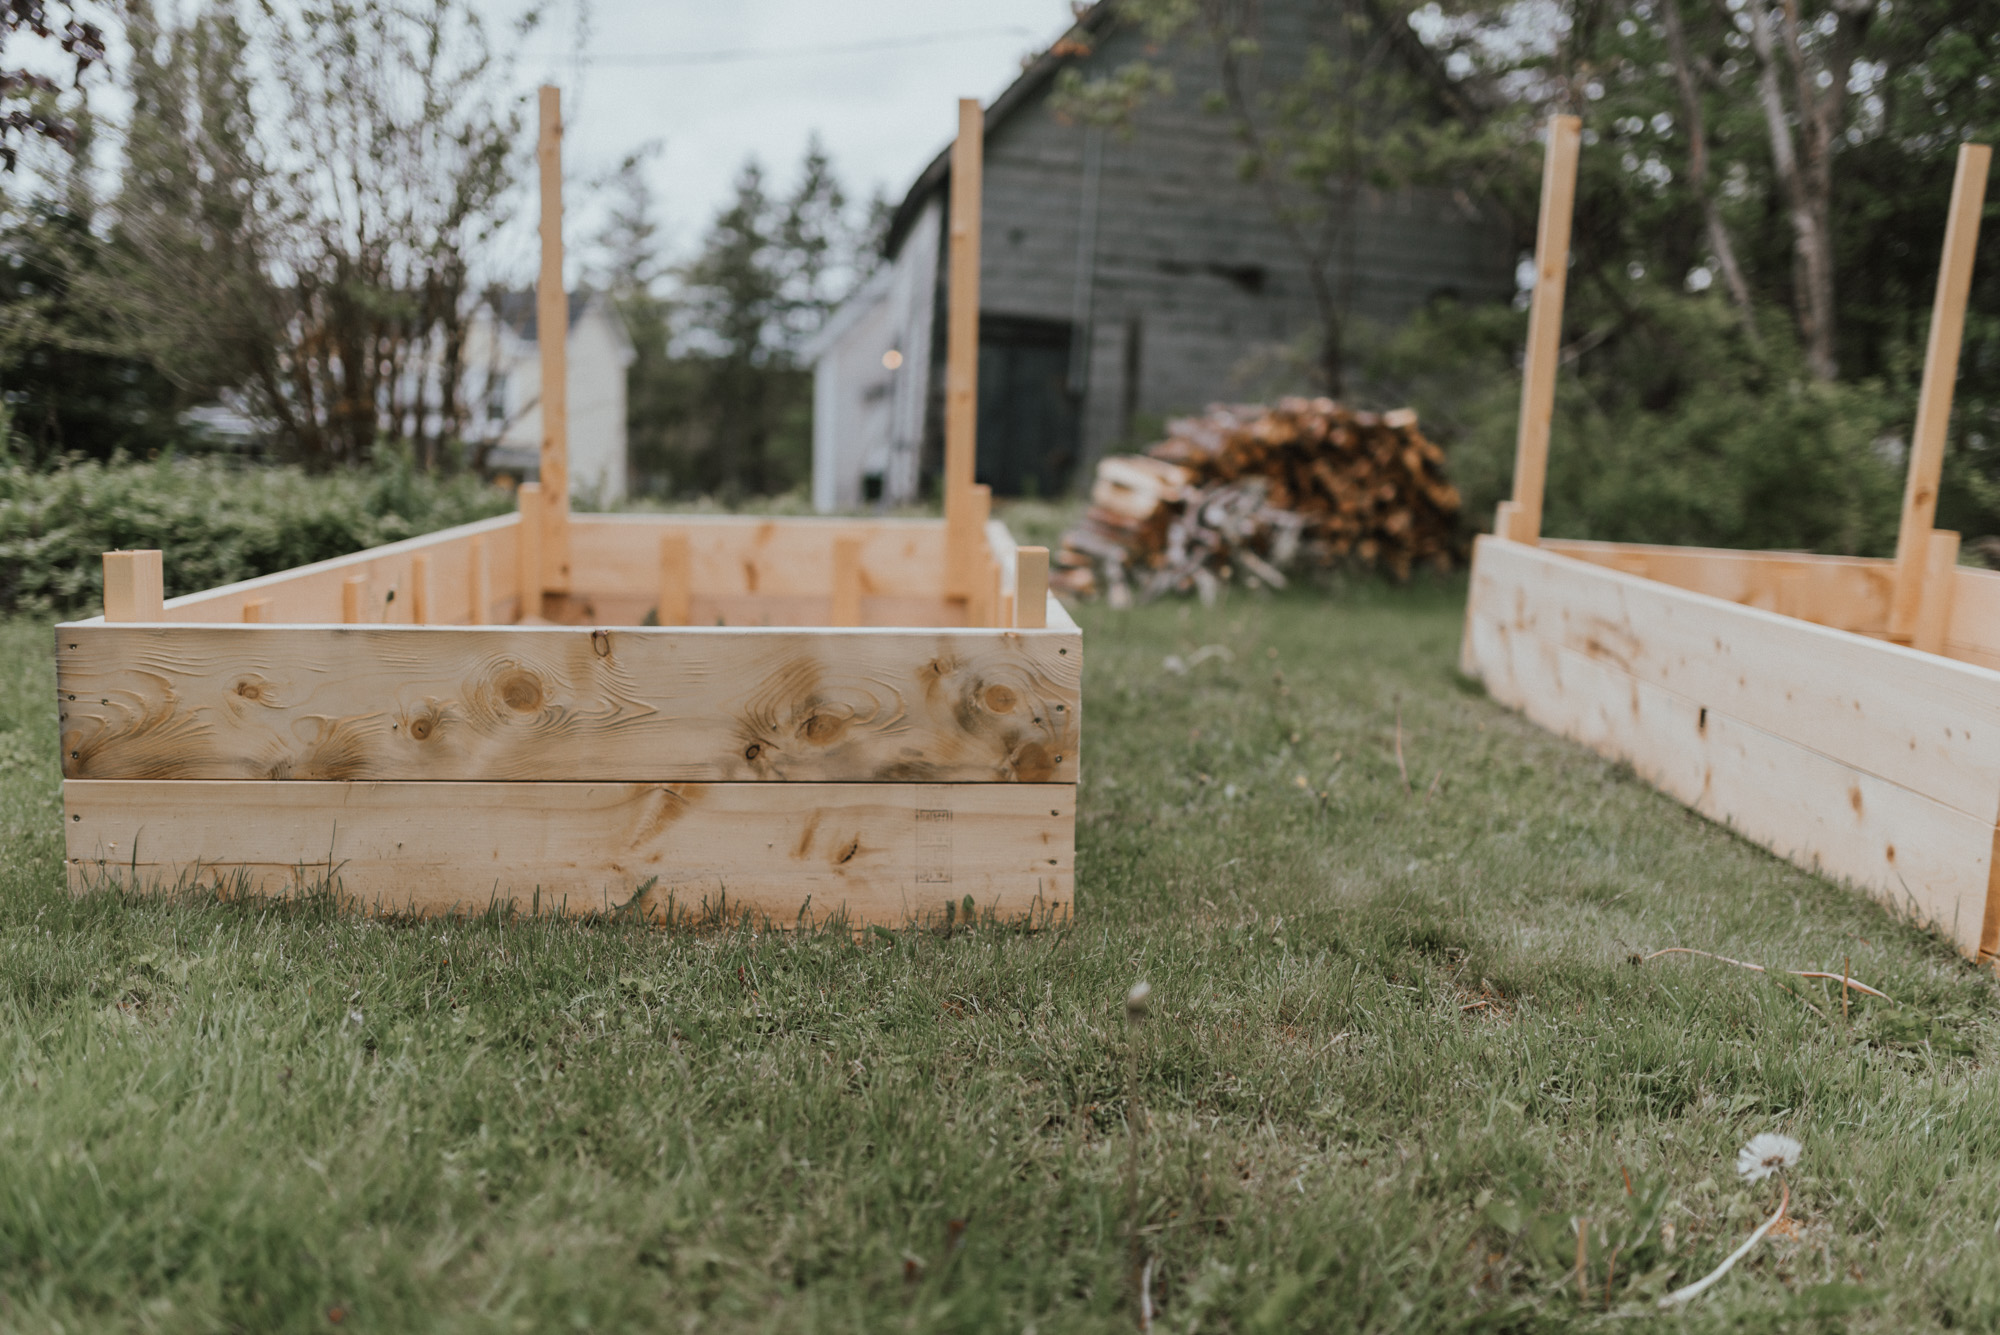 The Wild Decoelis | How To: Our Raised Vegetable Garden On a budget | spruce boards